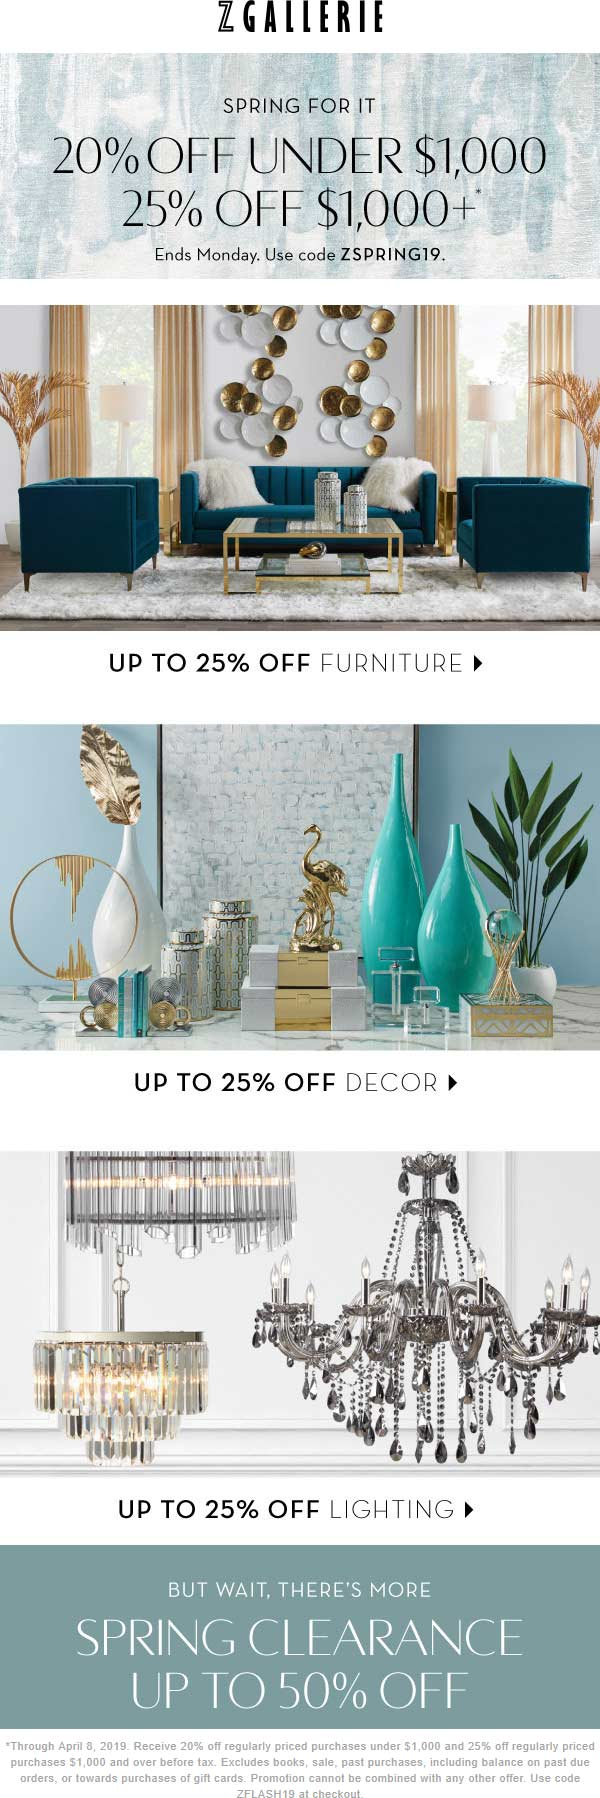 Z Gallerie Coupon July 2019 20-25% off today at Z Gallerie, or online via promo code ZSPRING19